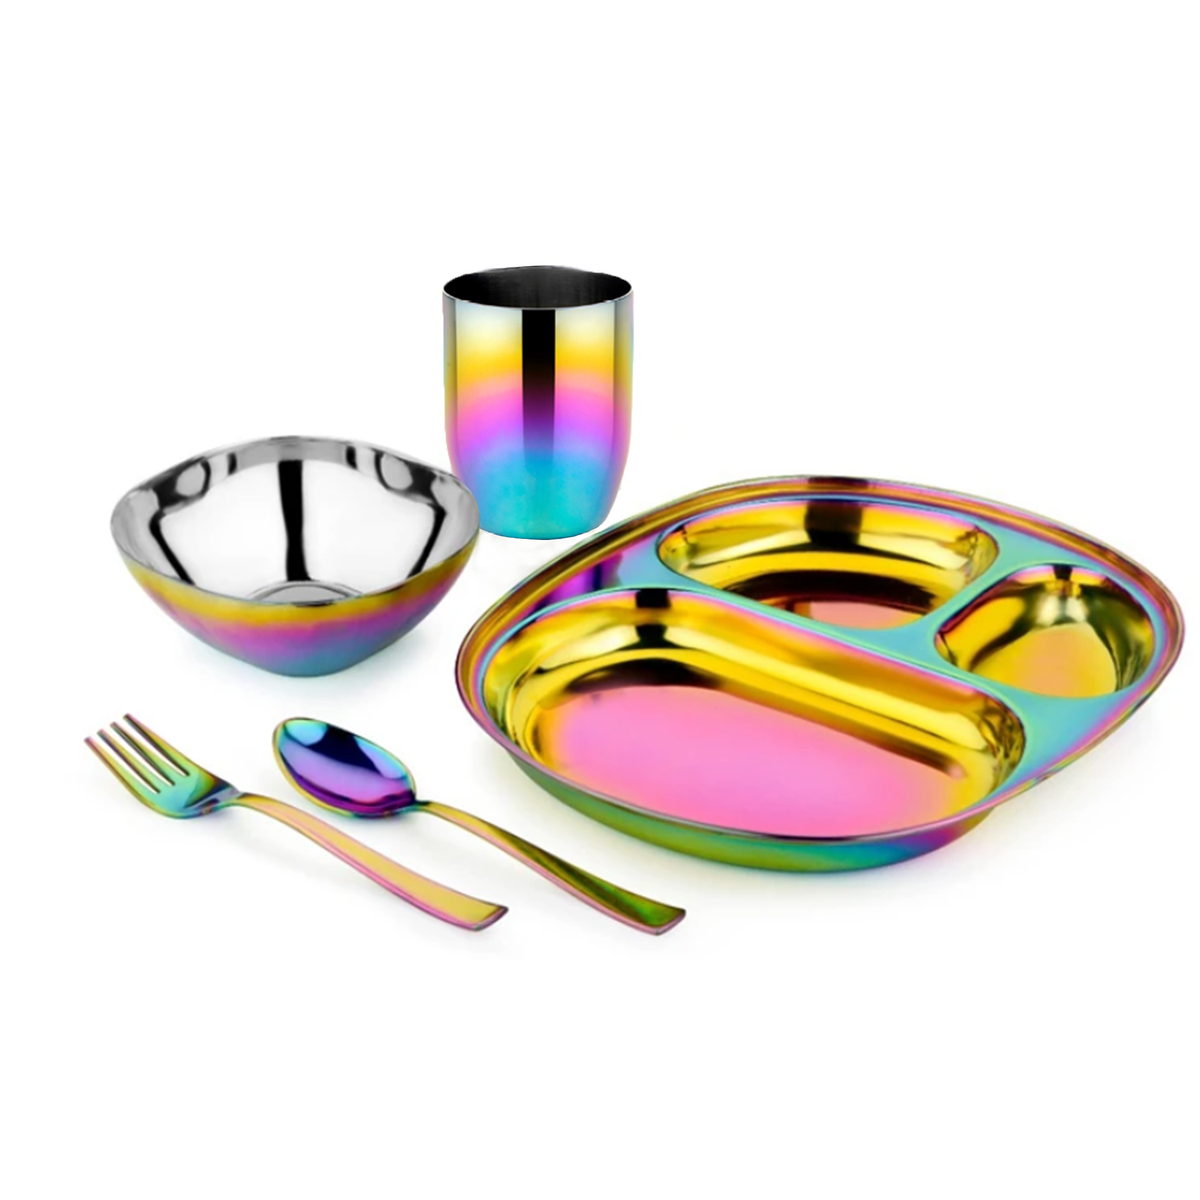 RainbowStainlessSteelChildSet_16e32812-a26e-417c-b5ad-a3e2ad3c8be0_1200x